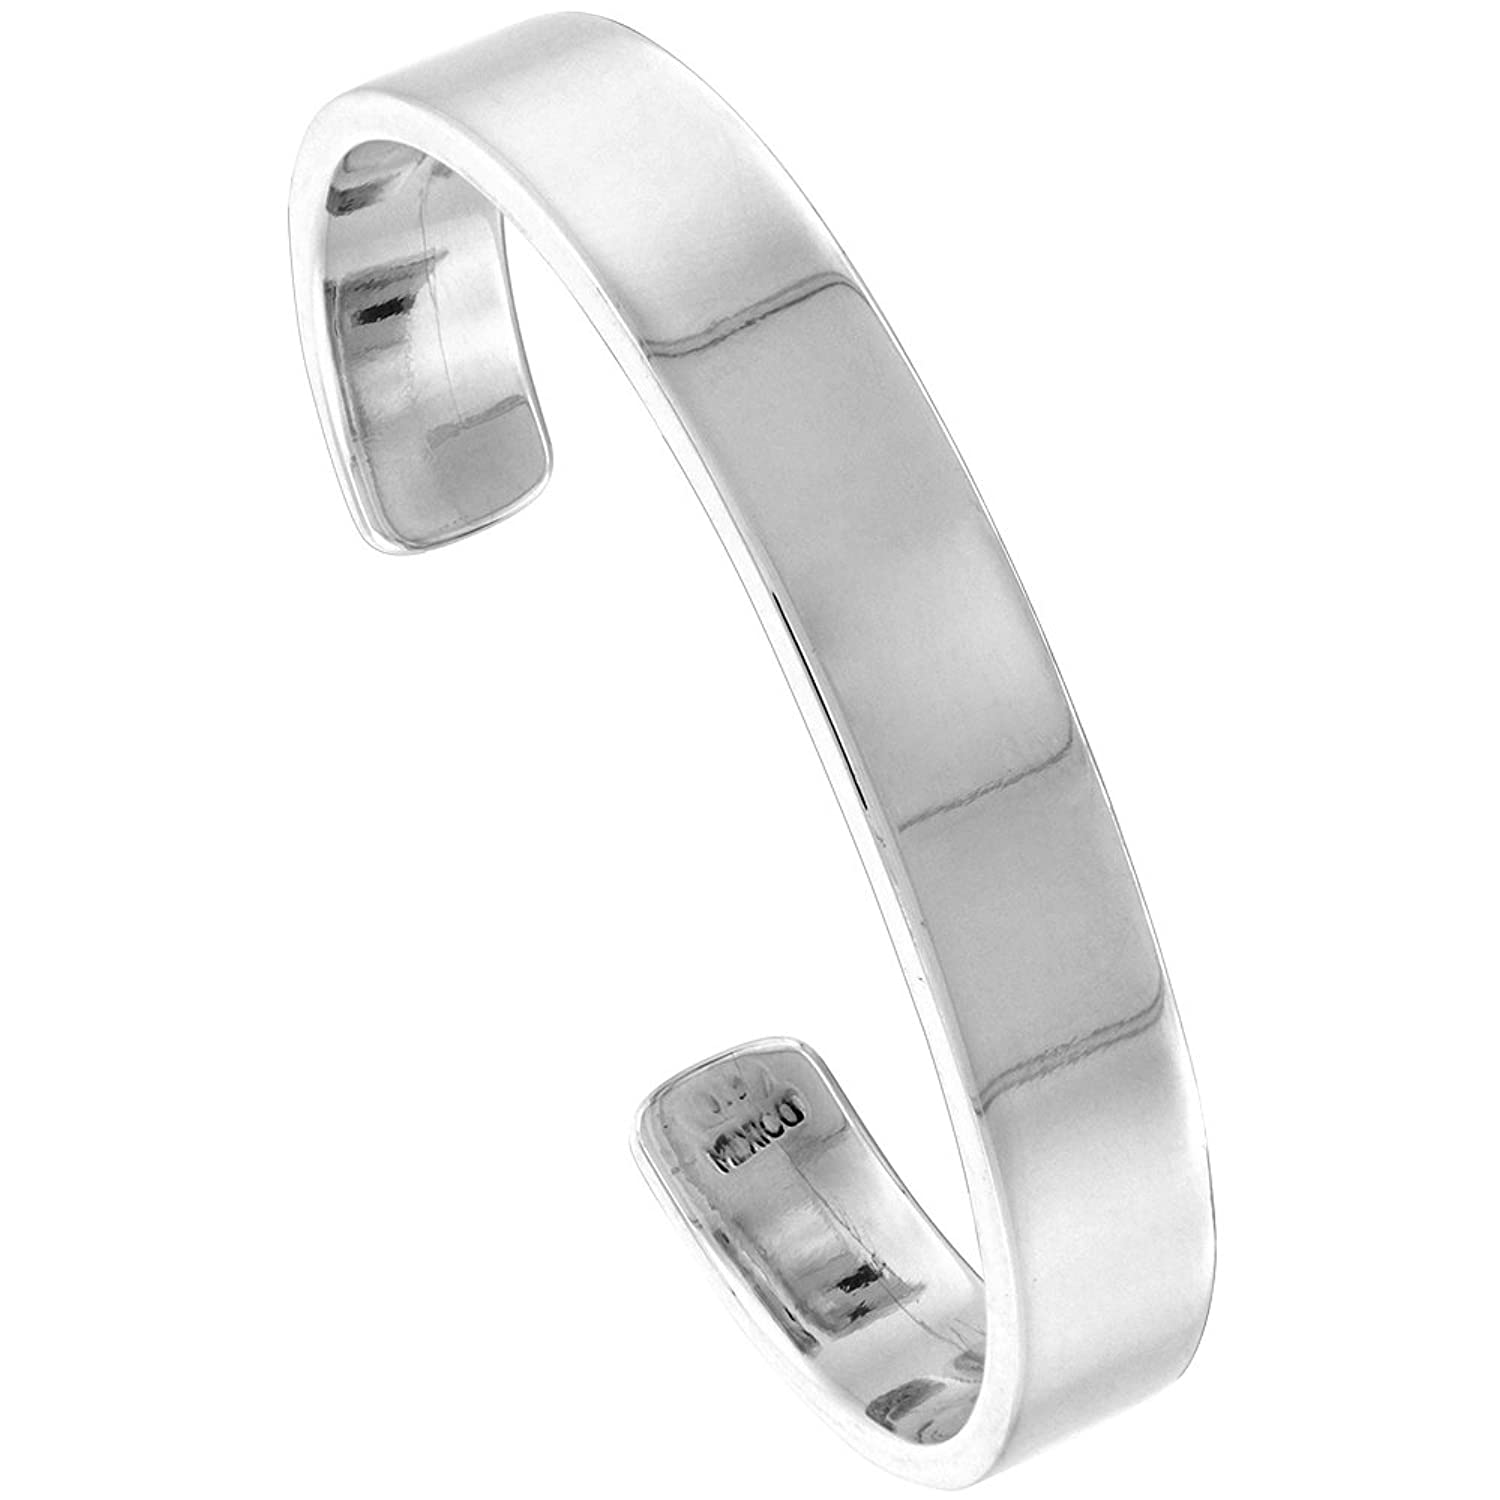 personalised bracelet sterling plain hurleyburley bangle silver charm original shop name bangles